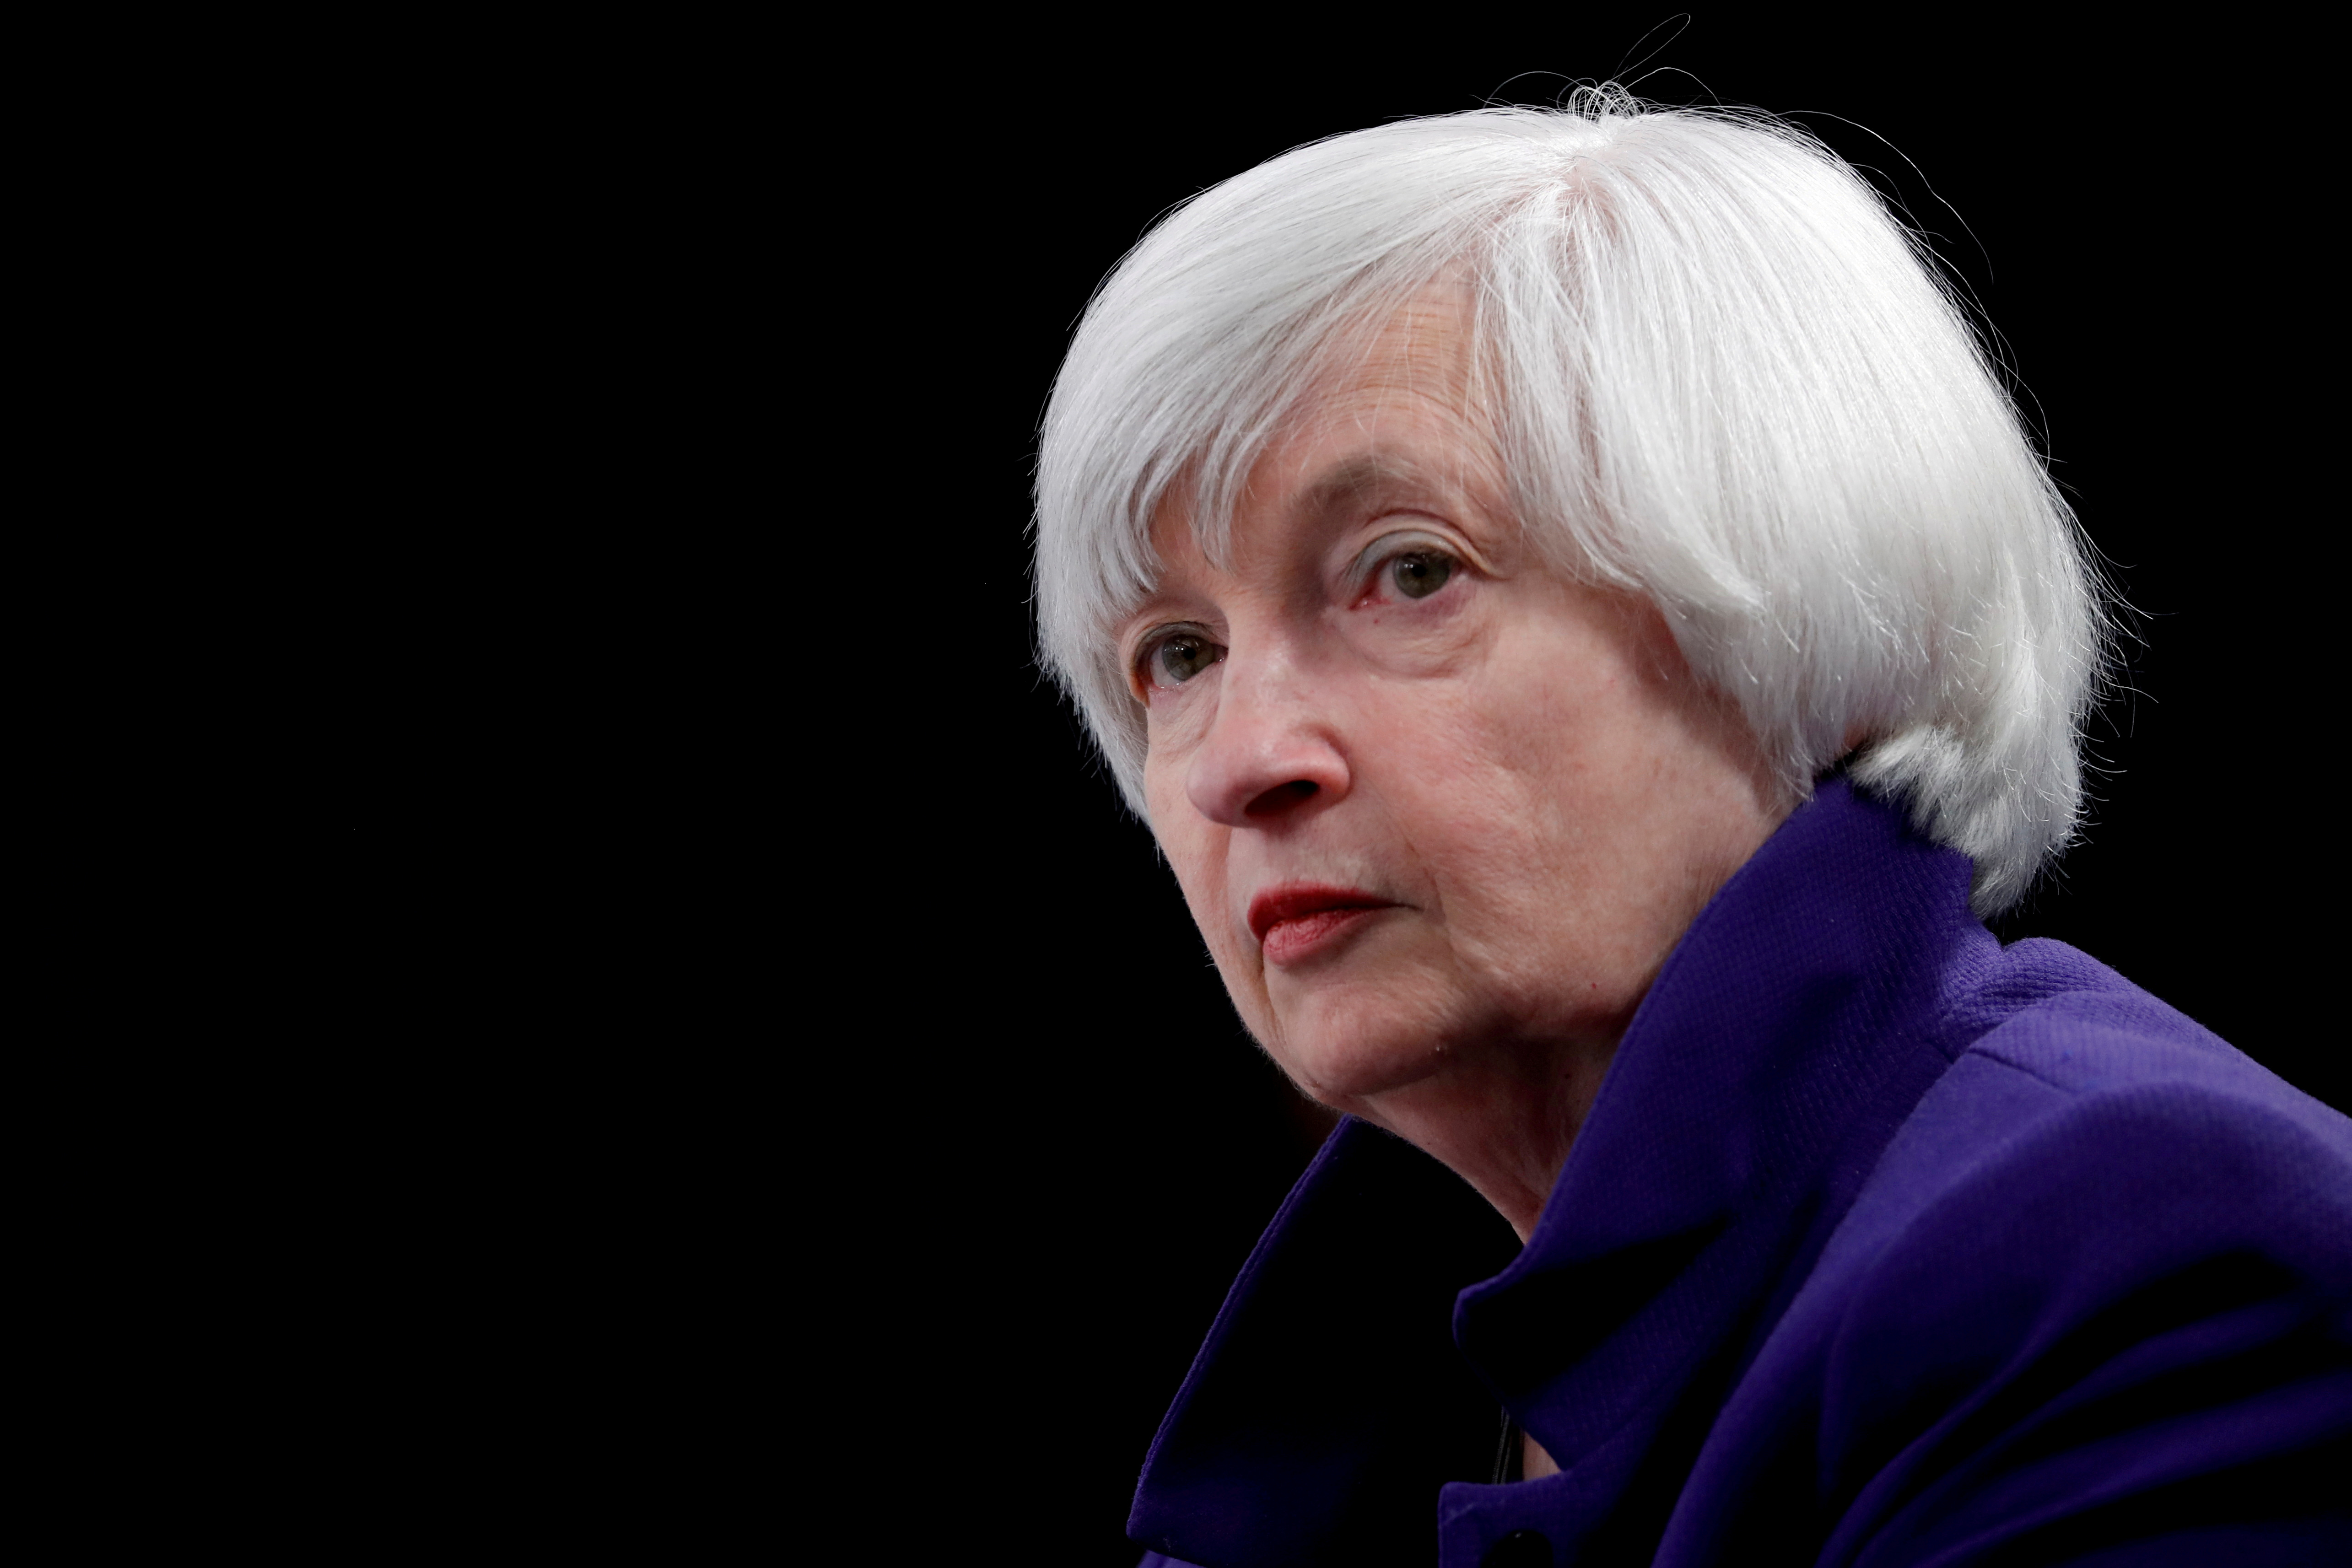 U.S. Treasury Secretary Janet Yellen, the former Federal Reserve chair, holds a news conference after a two-day Federal Open Market Committee (FOMC) meeting in Washington, U.S. December 13, 2017.  REUTERS/Jonathan Ernst/File Photo